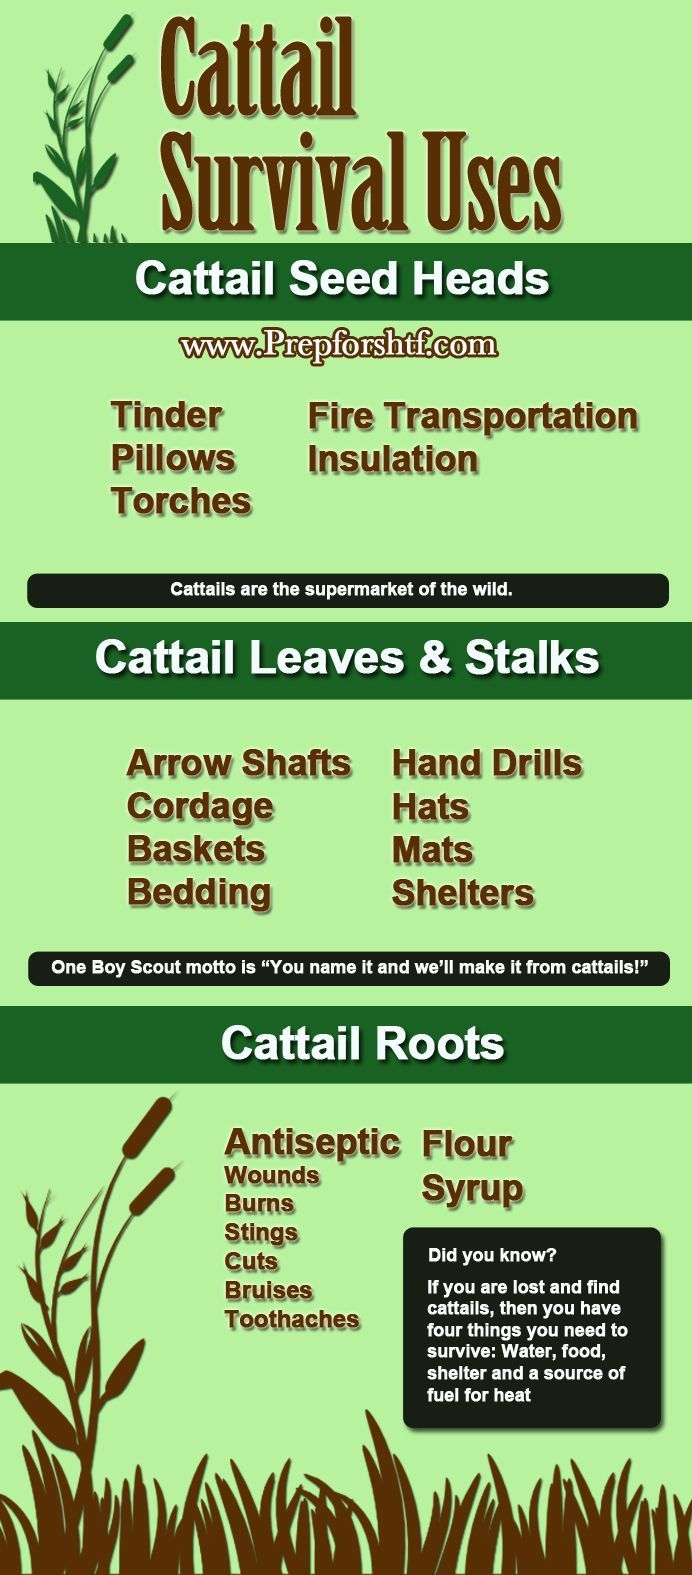 Cattail Survival Uses | Survival Prepping Ideas, Survival Gear, Skills & Emergency Preparedness Tips - Survival Life Blog: survivallife.com #survivallife